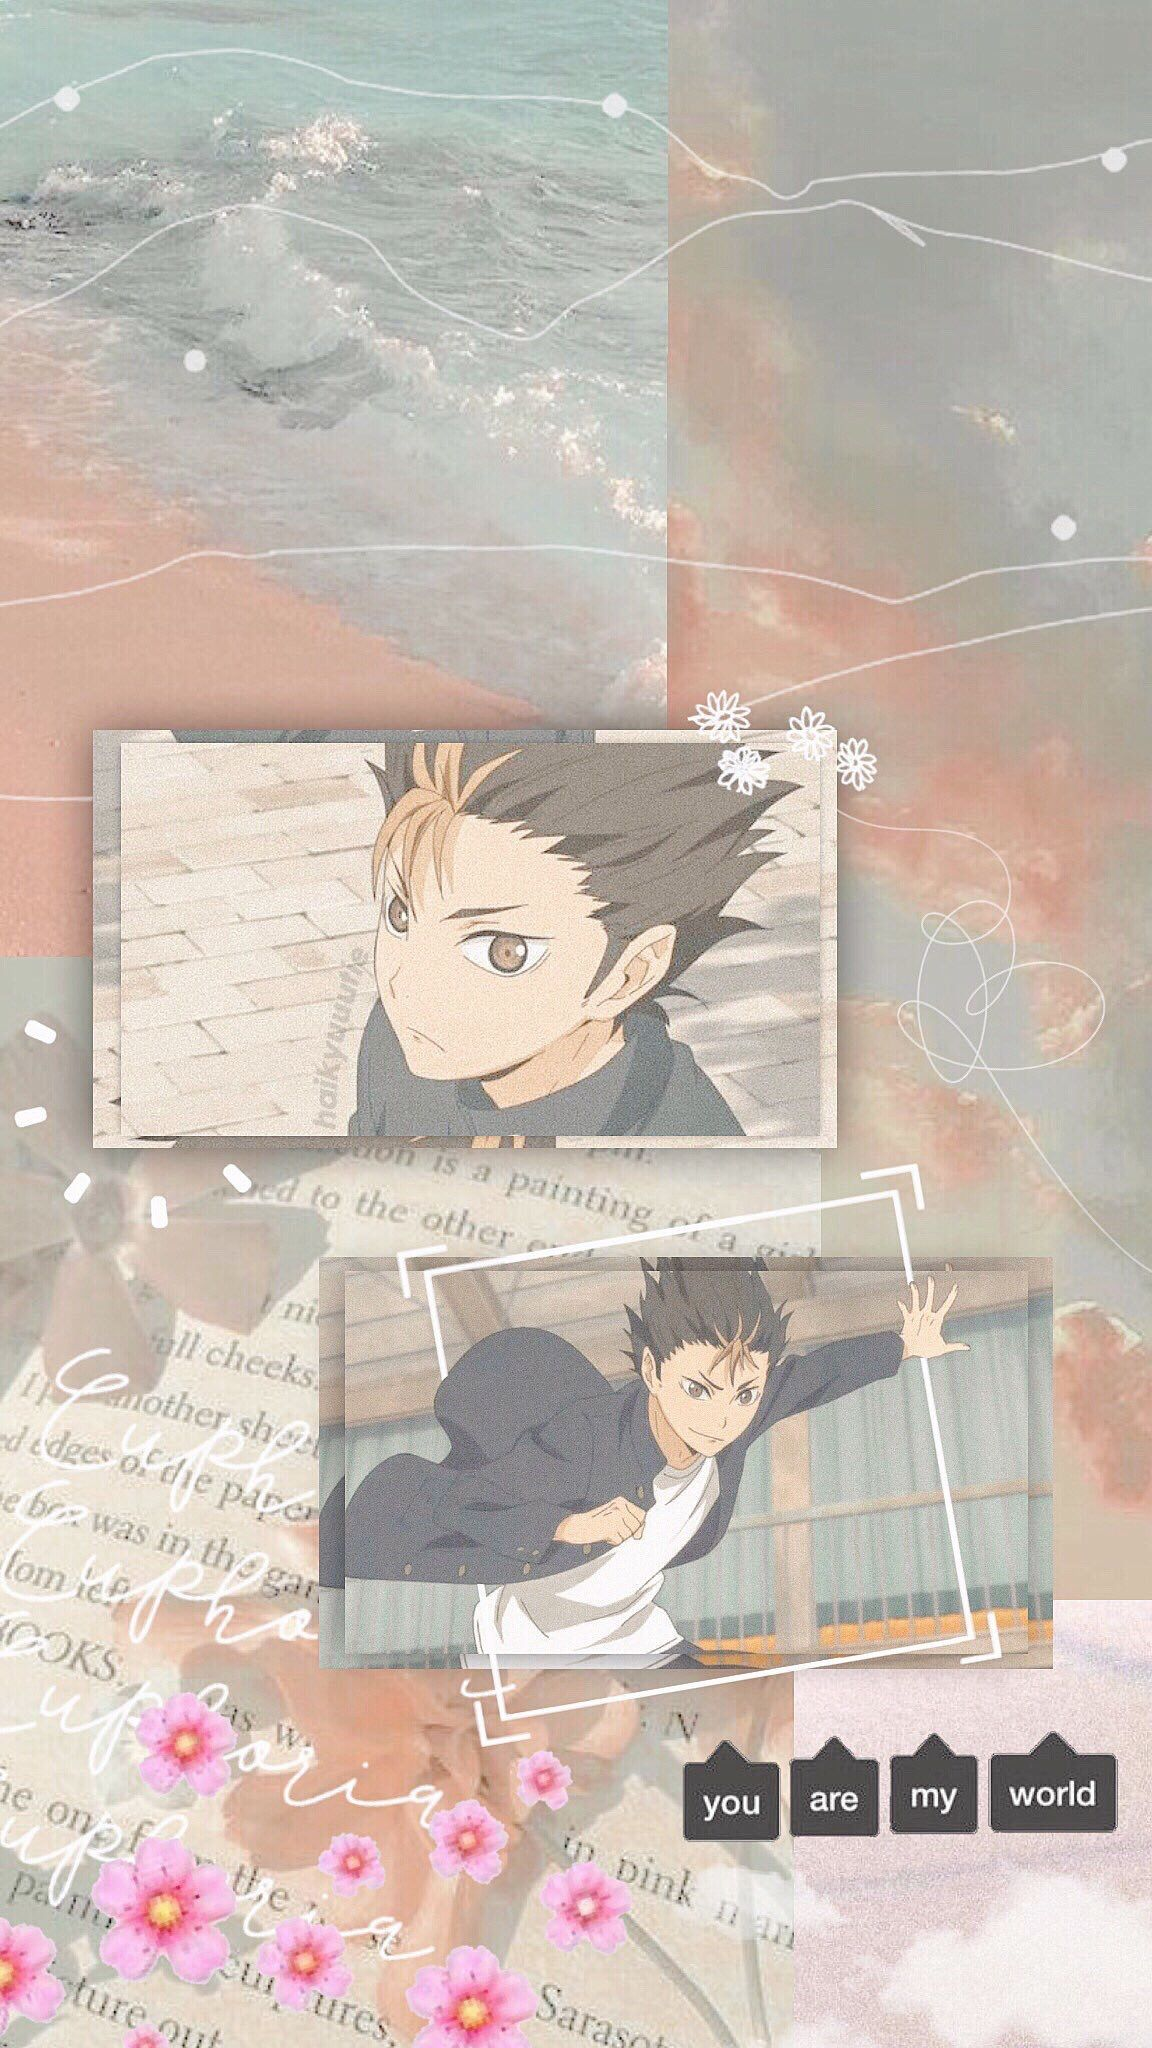 Yuu Nishinoya Wallpaper Anime Wallpaper Iphone Cute Anime Wallpaper Haikyuu Wallpaper